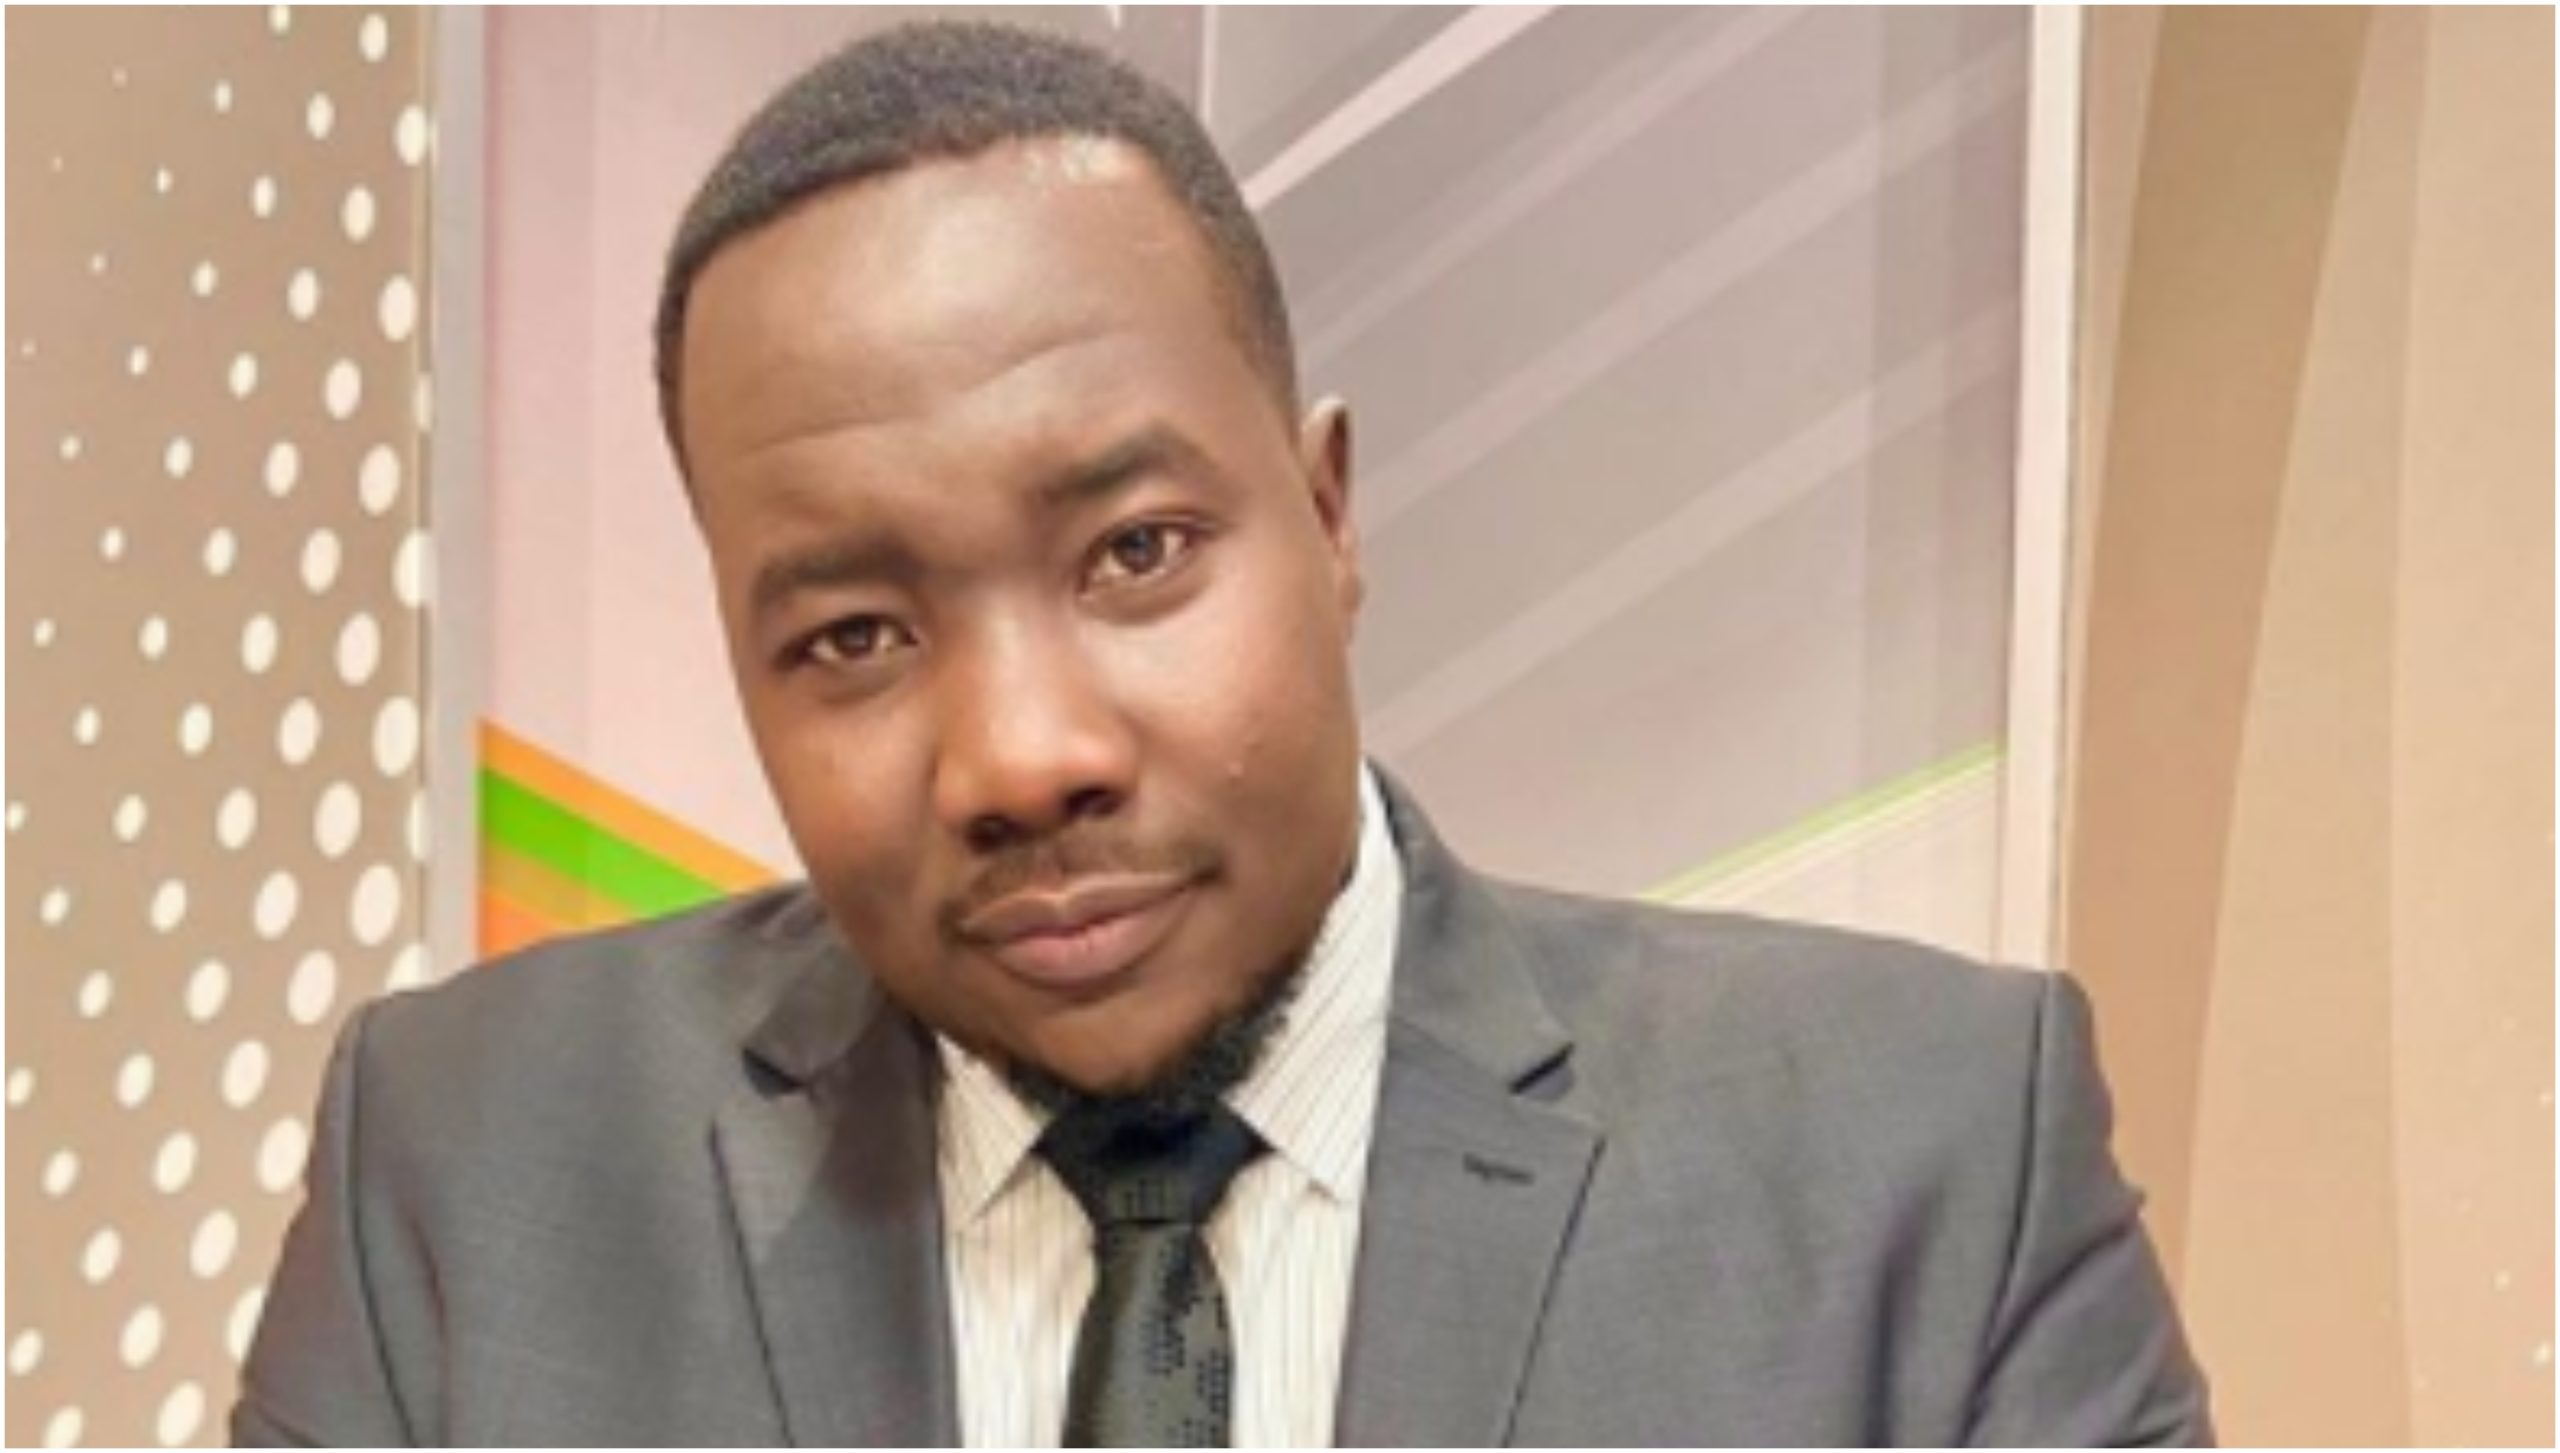 Willis Raburu savagely exposed after lying about his humble beginnings at Citizen TV